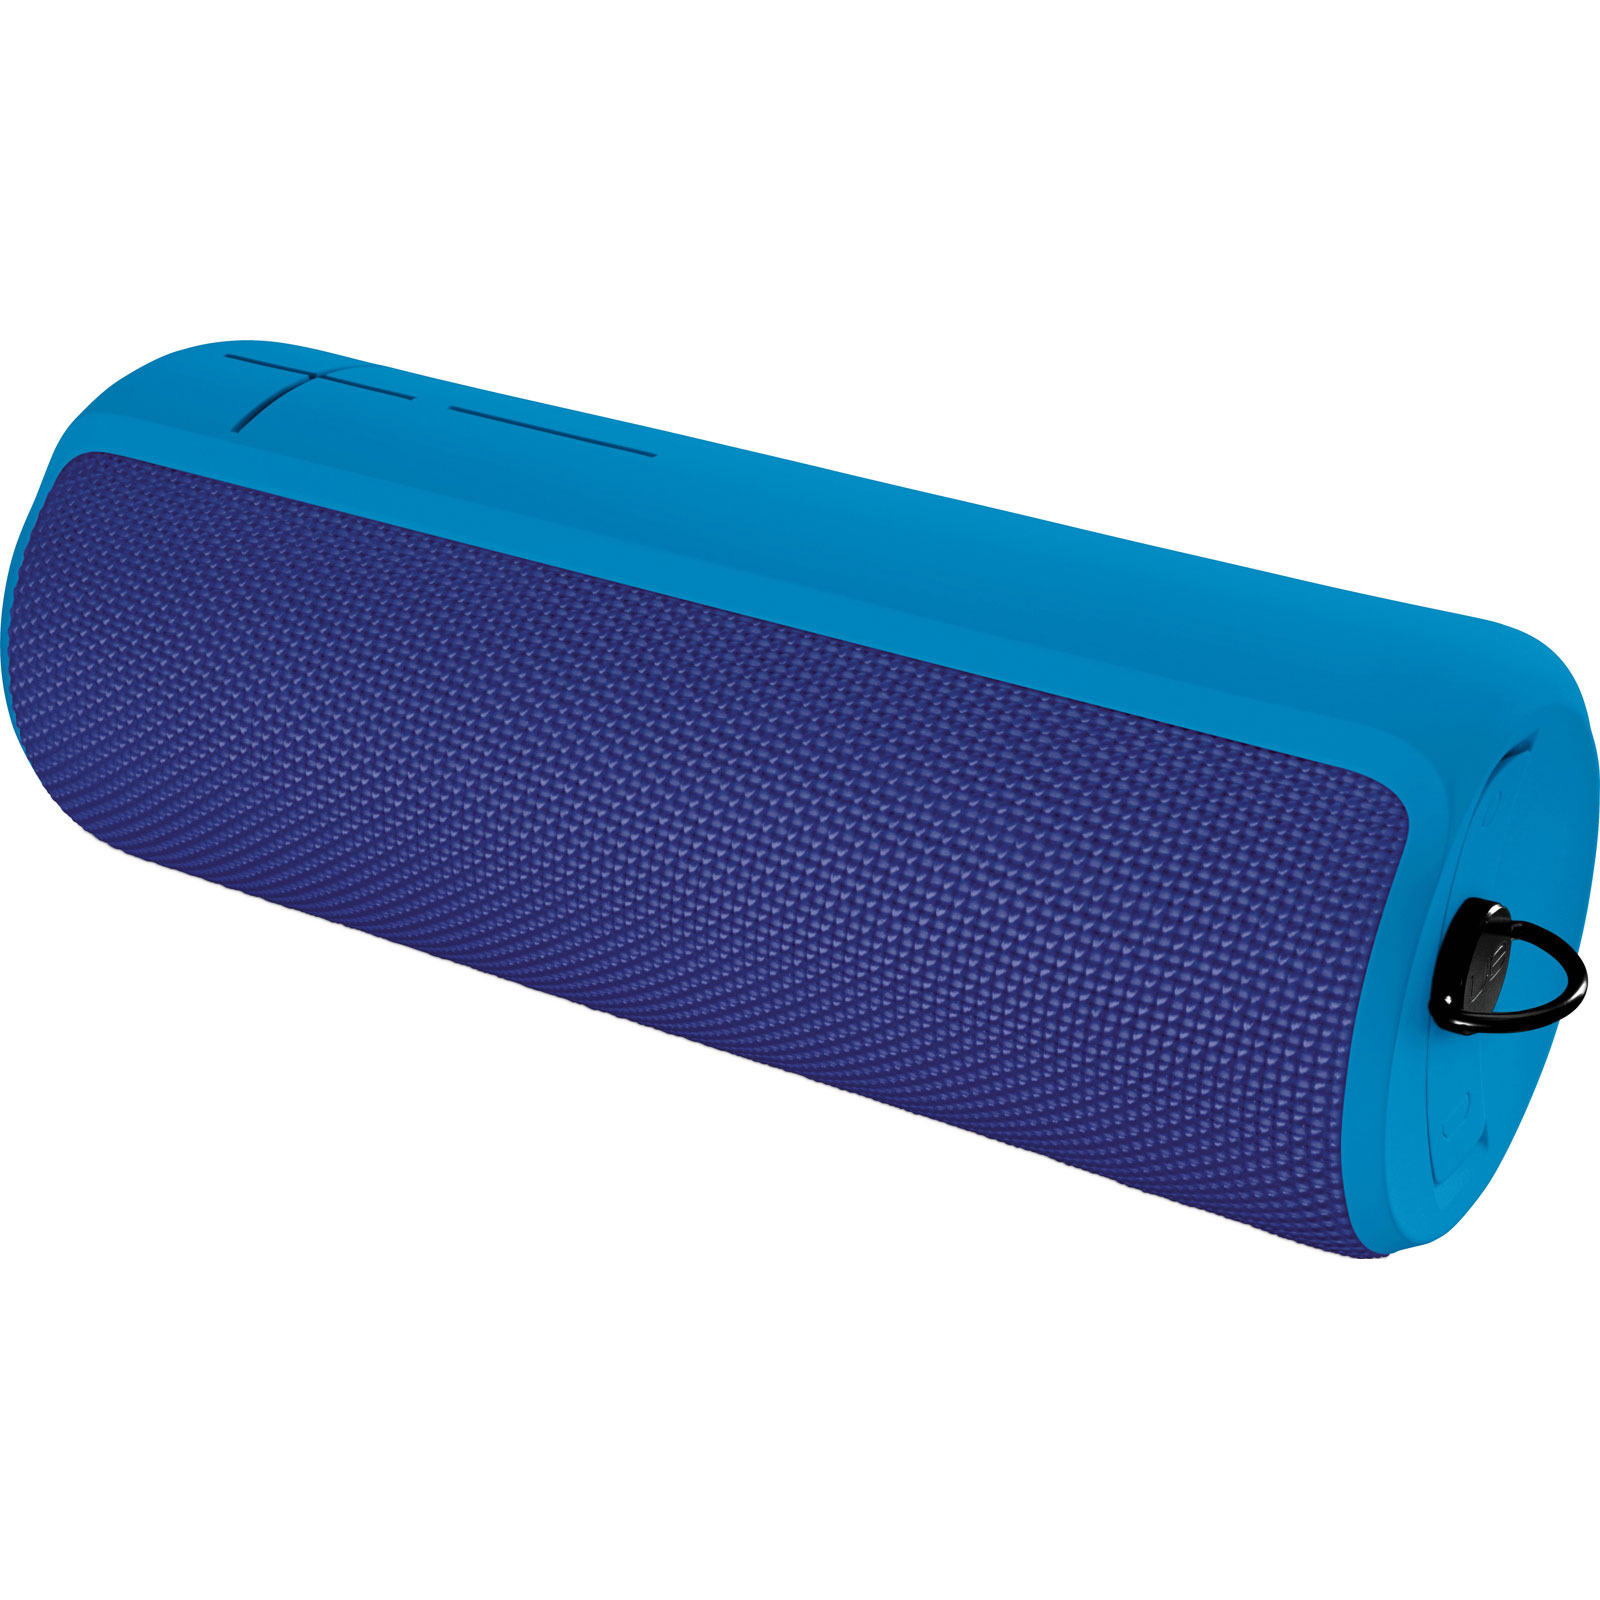 Ue boom 2 bleu dock enceinte bluetooth ultimate ears for Housse ue boom 2